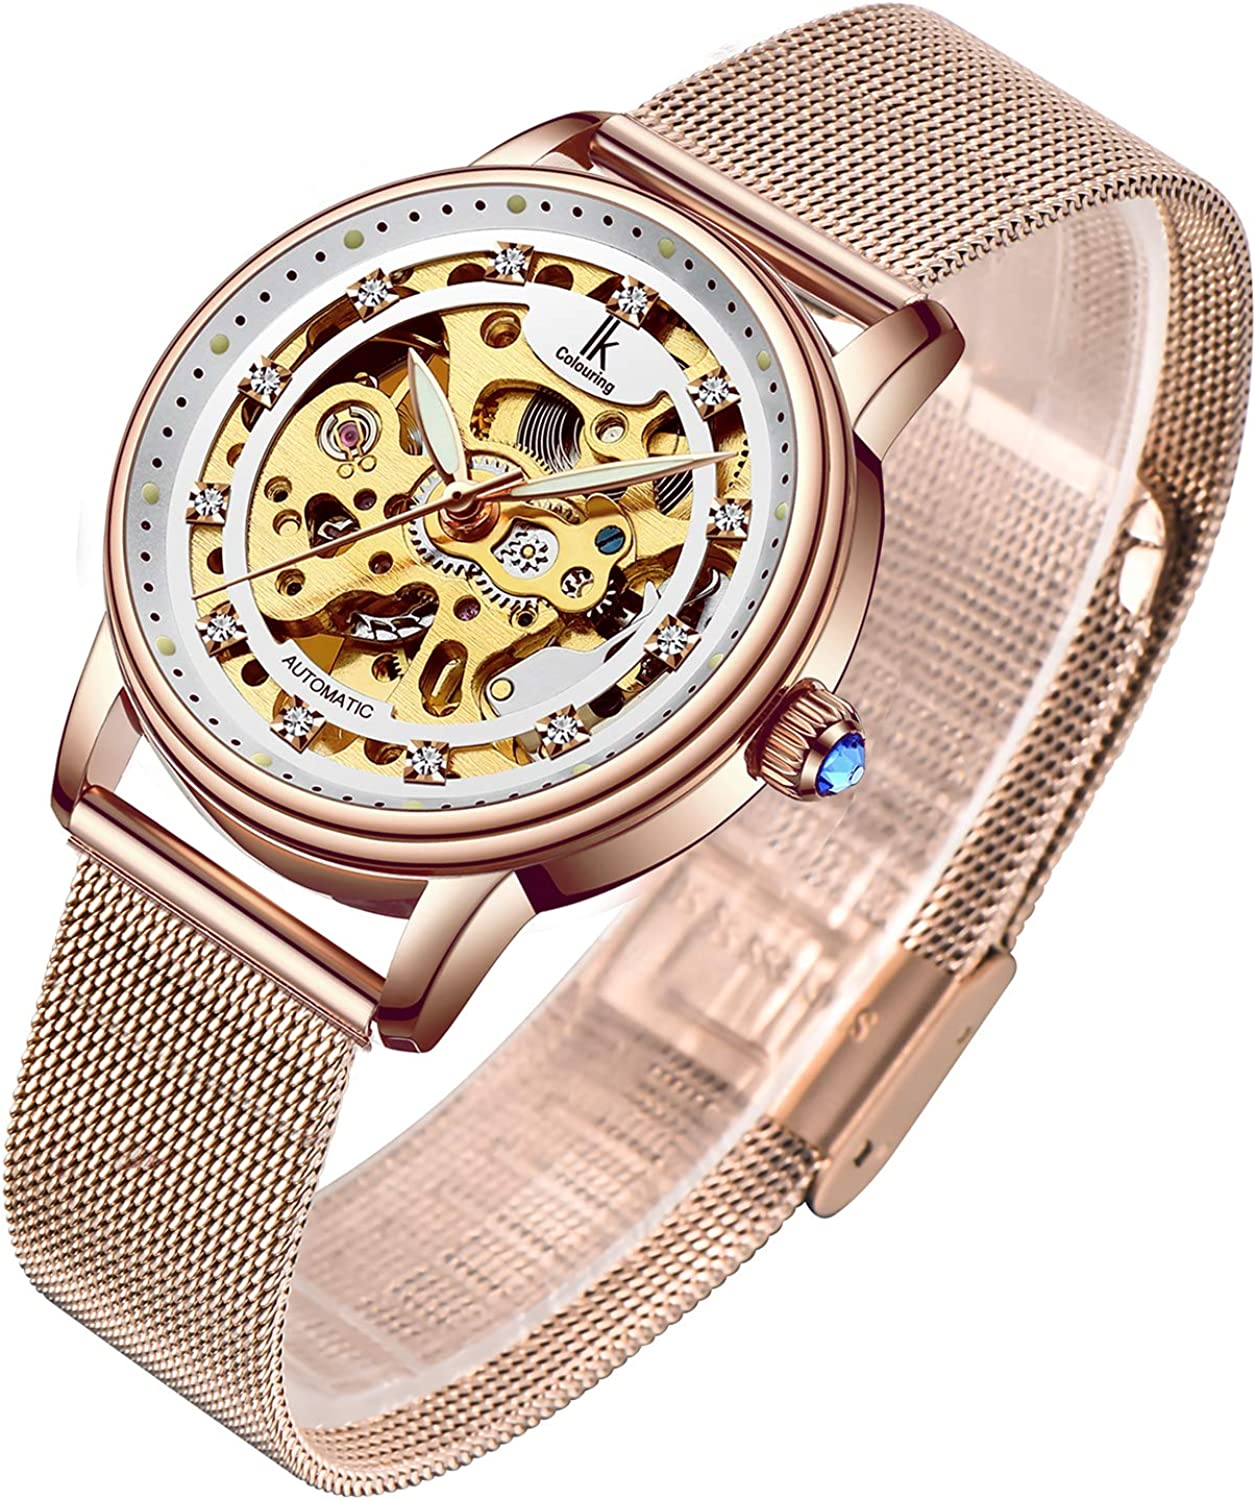 Gute Women's Automatic Watch, Tone Stainless Steel Self Winding Mechanical Lady Dress Watch